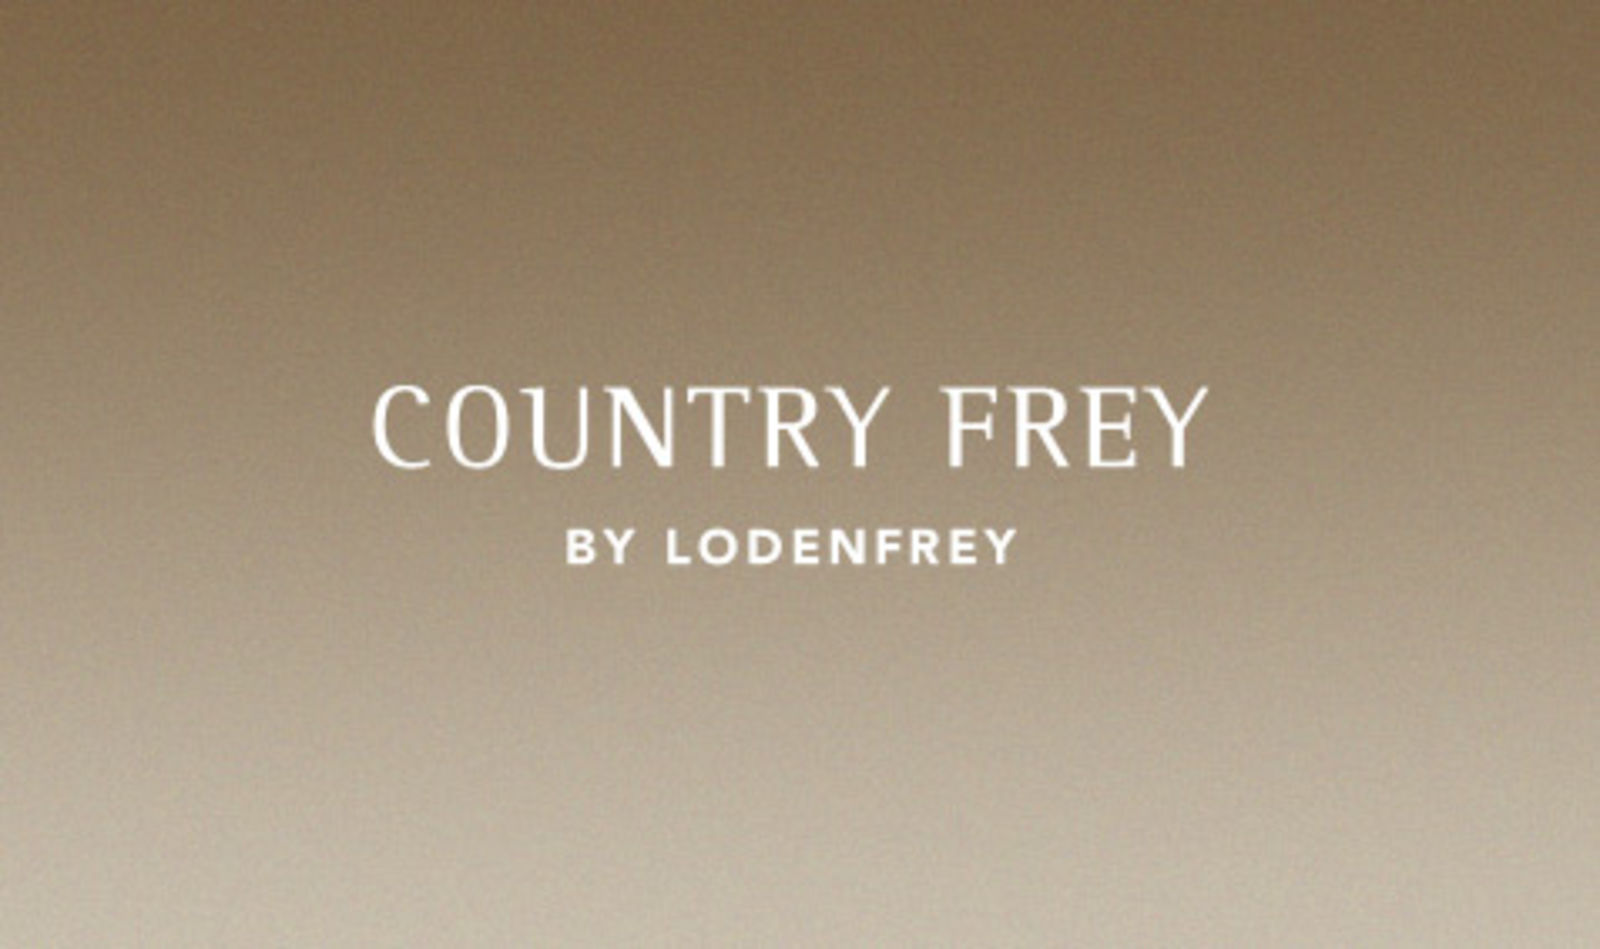 COUNTRY FREY by LODENFREY